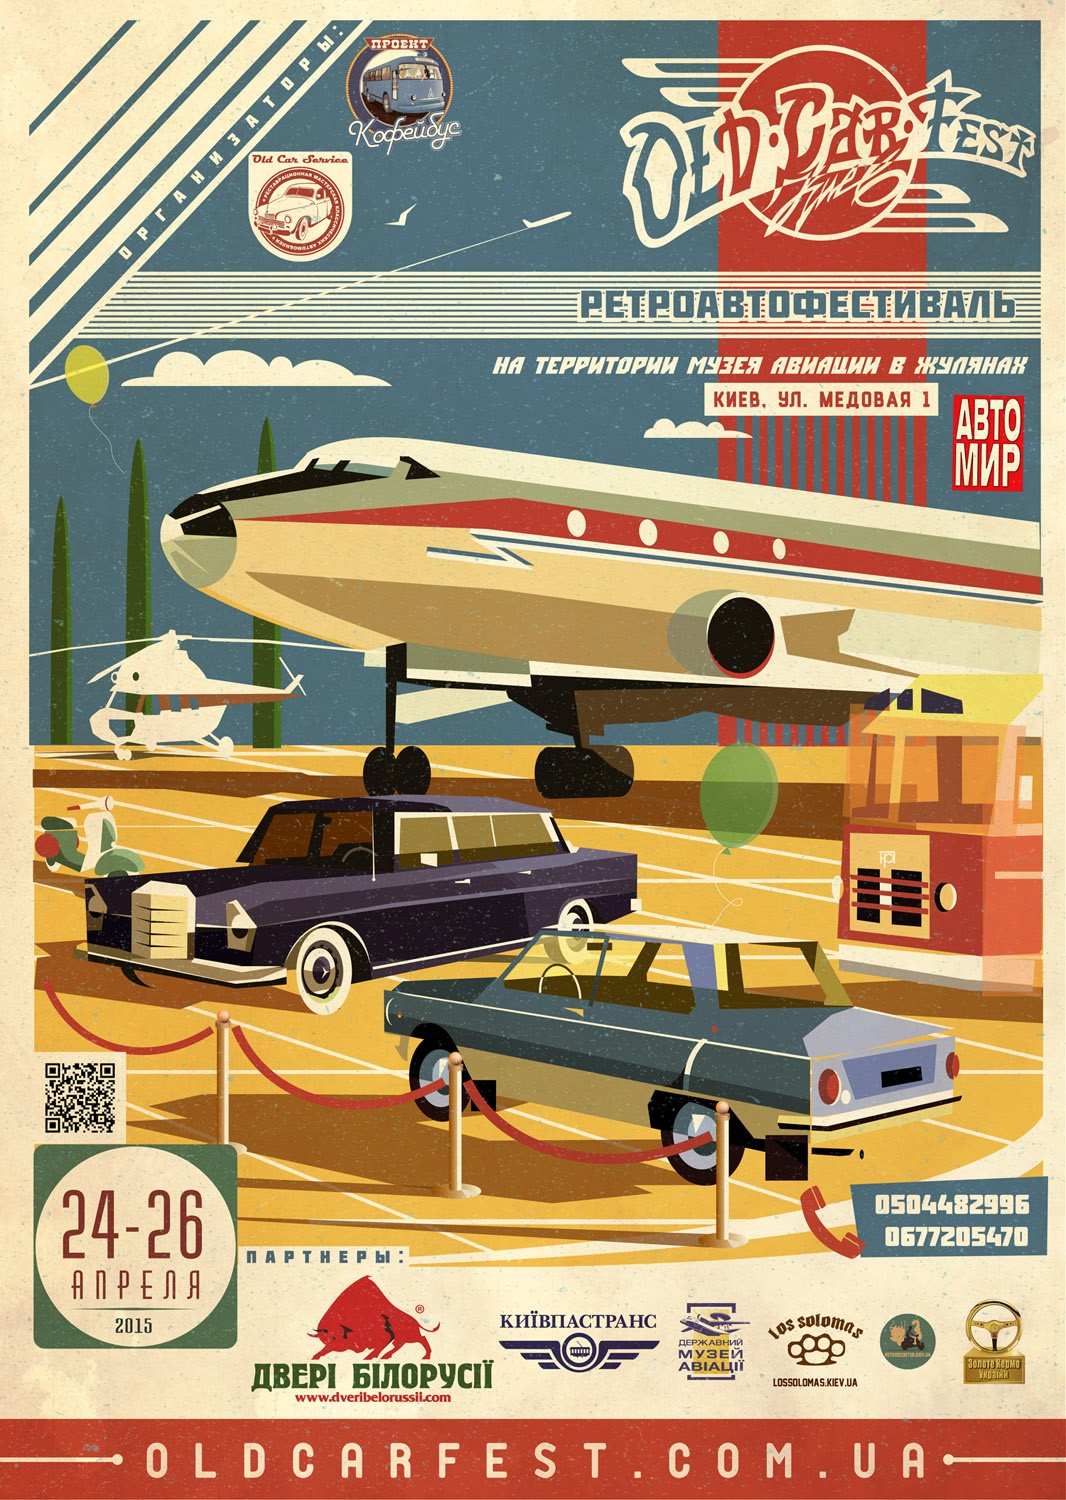 oldcarfest_poster_2_russiana3_for_dveri_belorussii